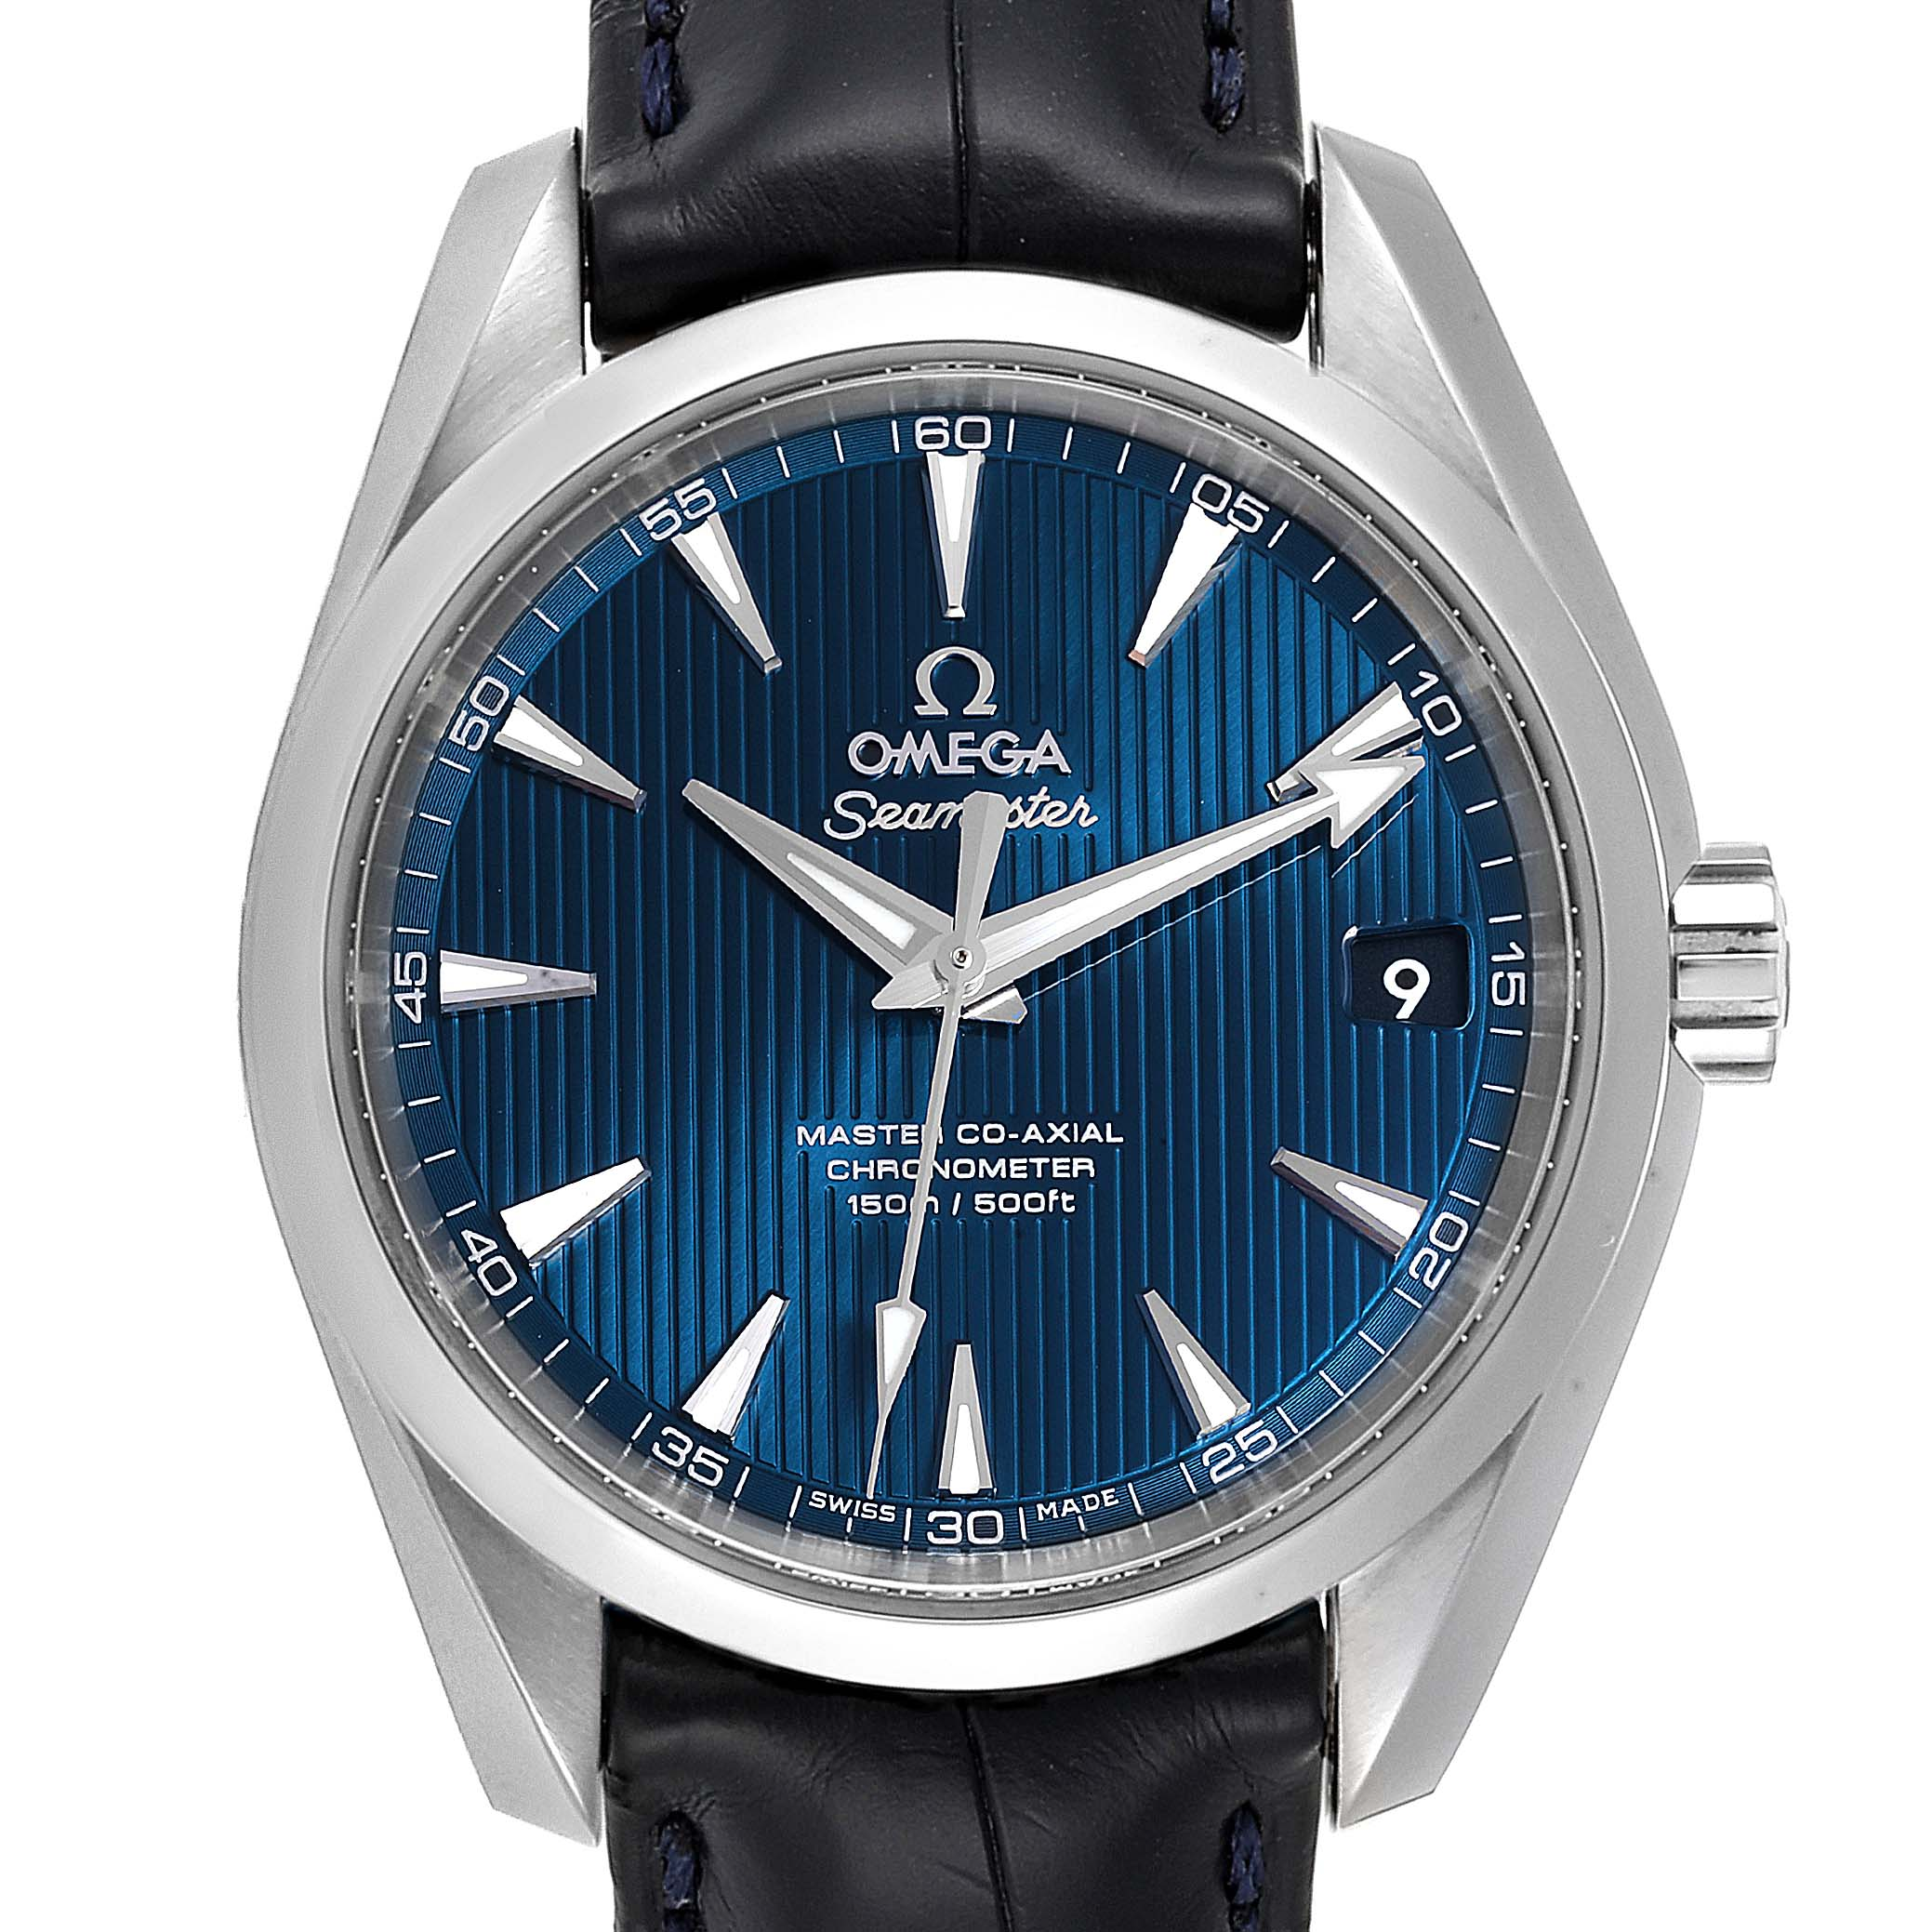 Omega Seamaster Aqua Terra Blue Dial Watch 231.13.39.21.03.001 Box Card